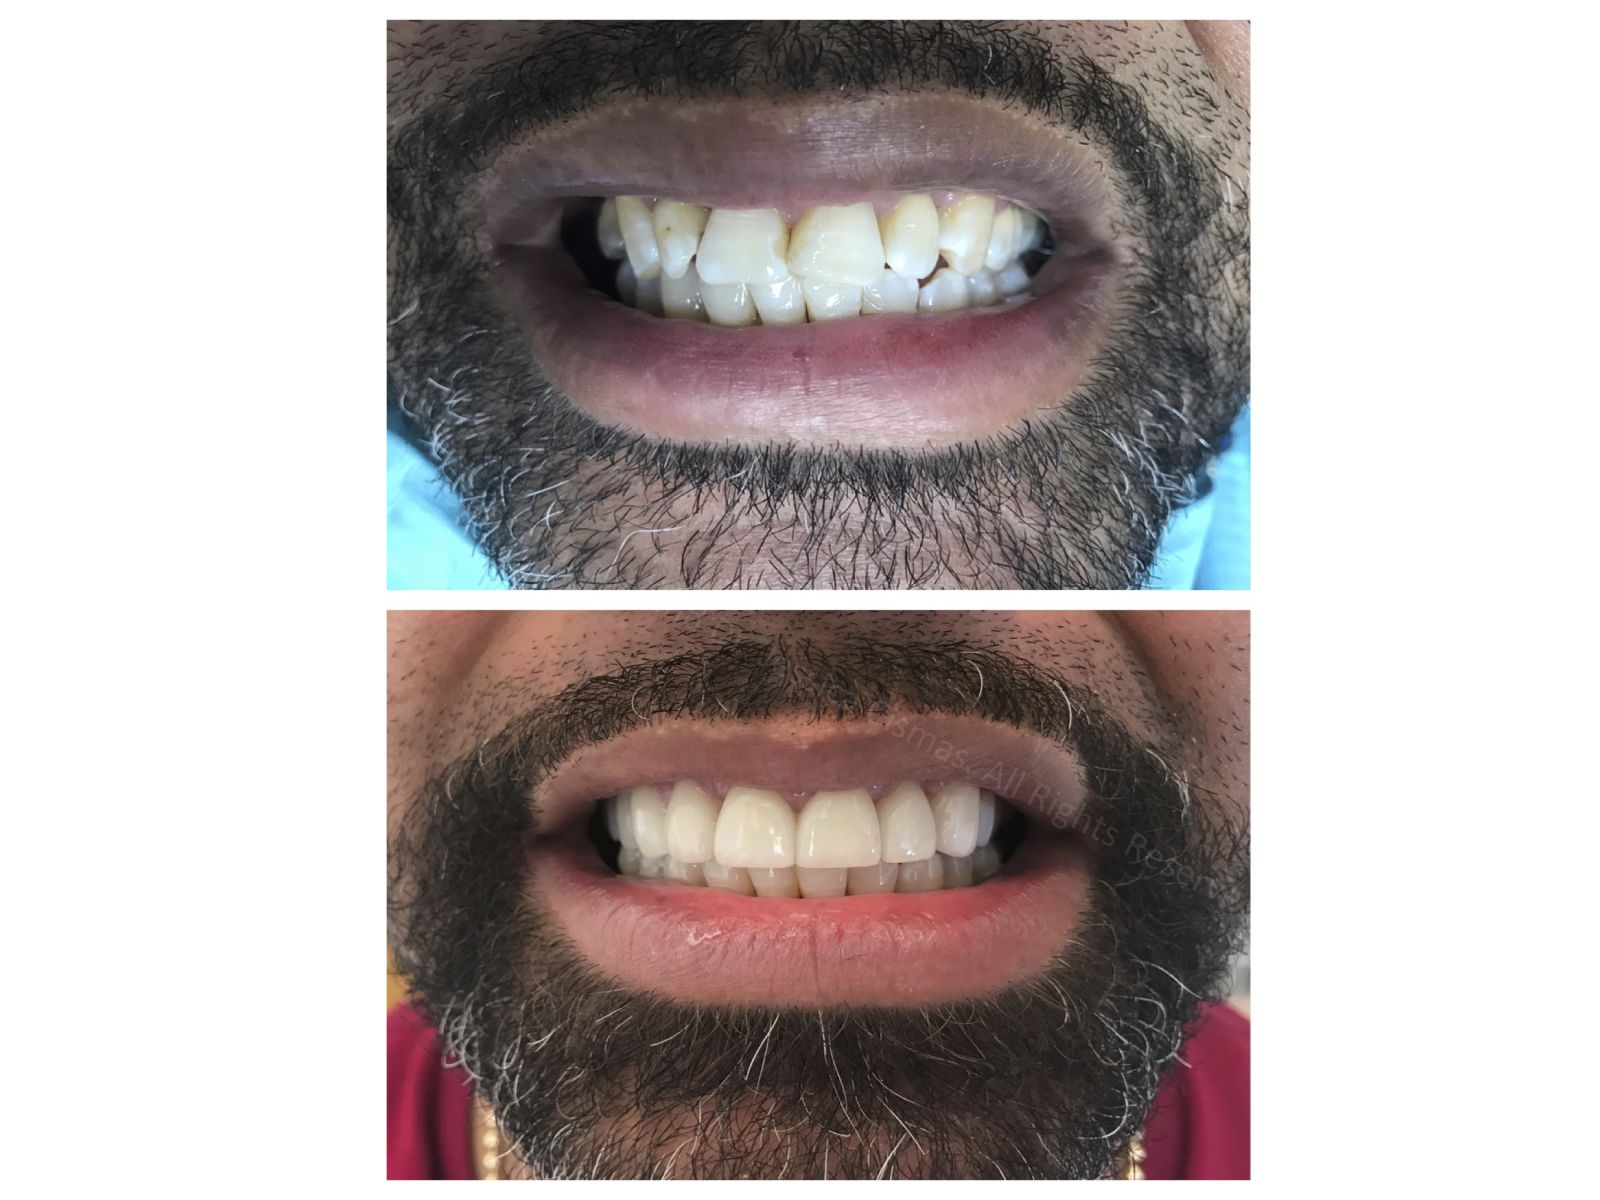 Porcelain veneers for this gentleman , makes all the difference. Dr. Jessica Cismas managed to create a unique look with natural looking porcelain veneers. For a limited time she offers complimentary consultations.